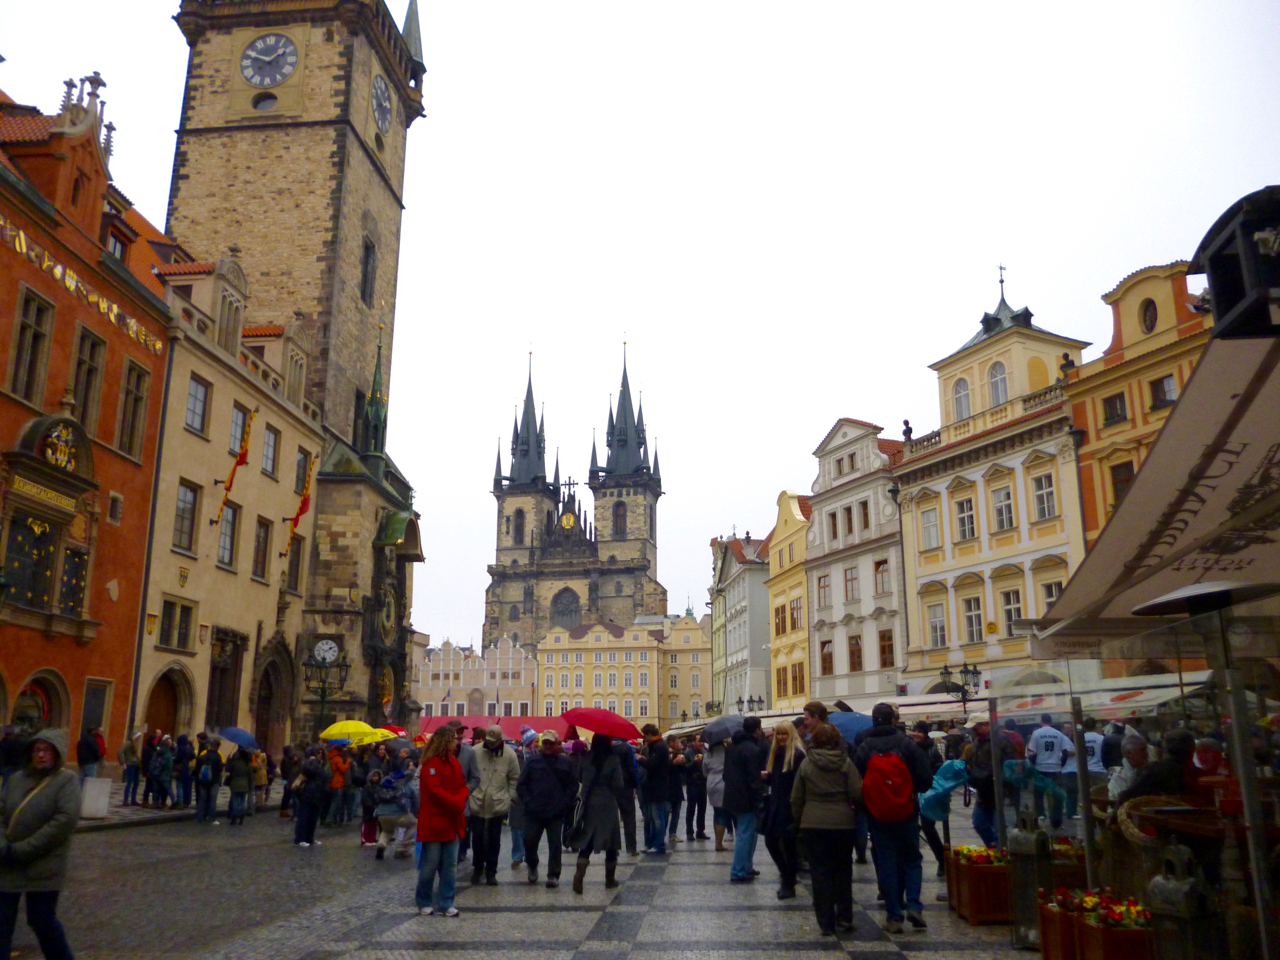 Old Town Square with cobblestones and tall, spikey architecture in many colors